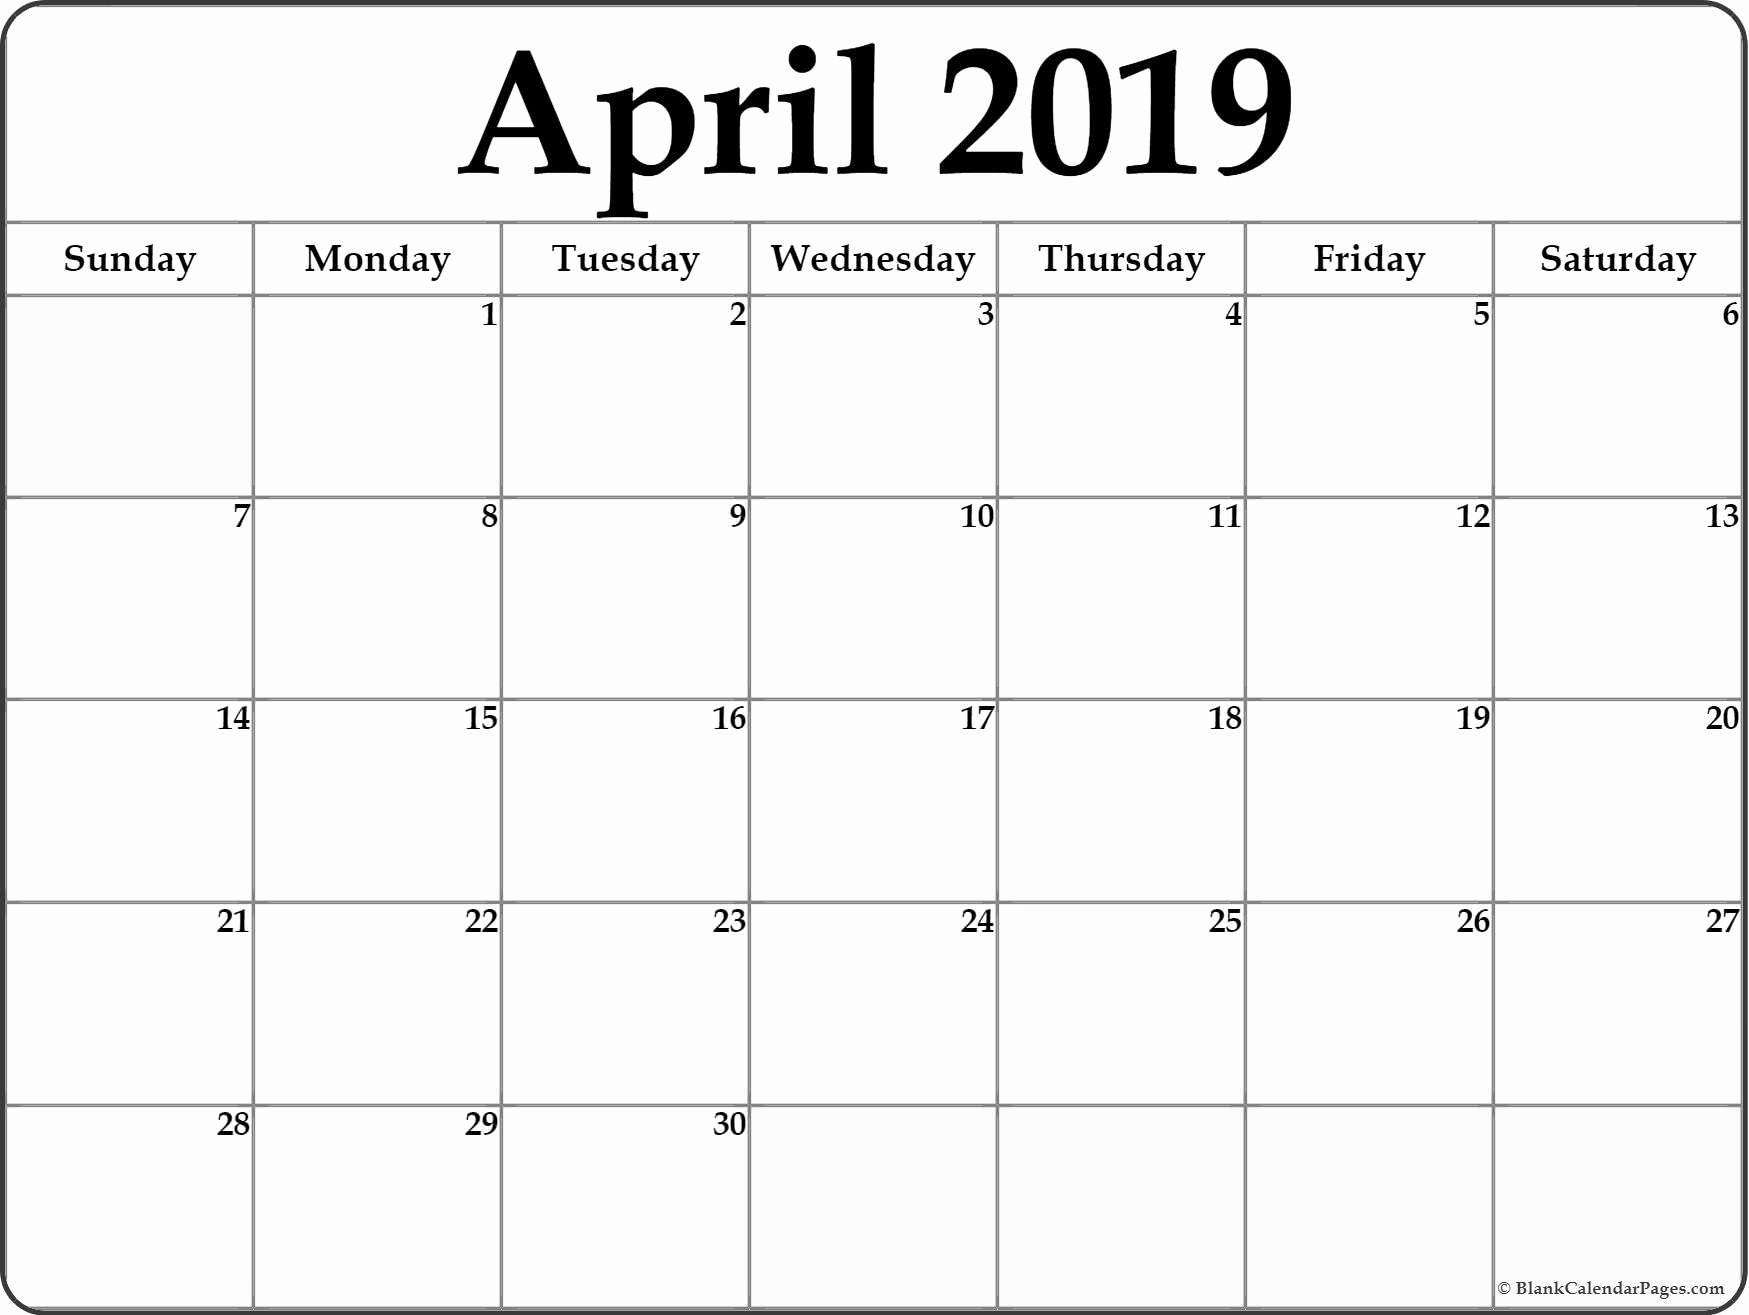 Free Printable Calendar Templates 2019 Lovely April 2019 Blank Calendar Templates